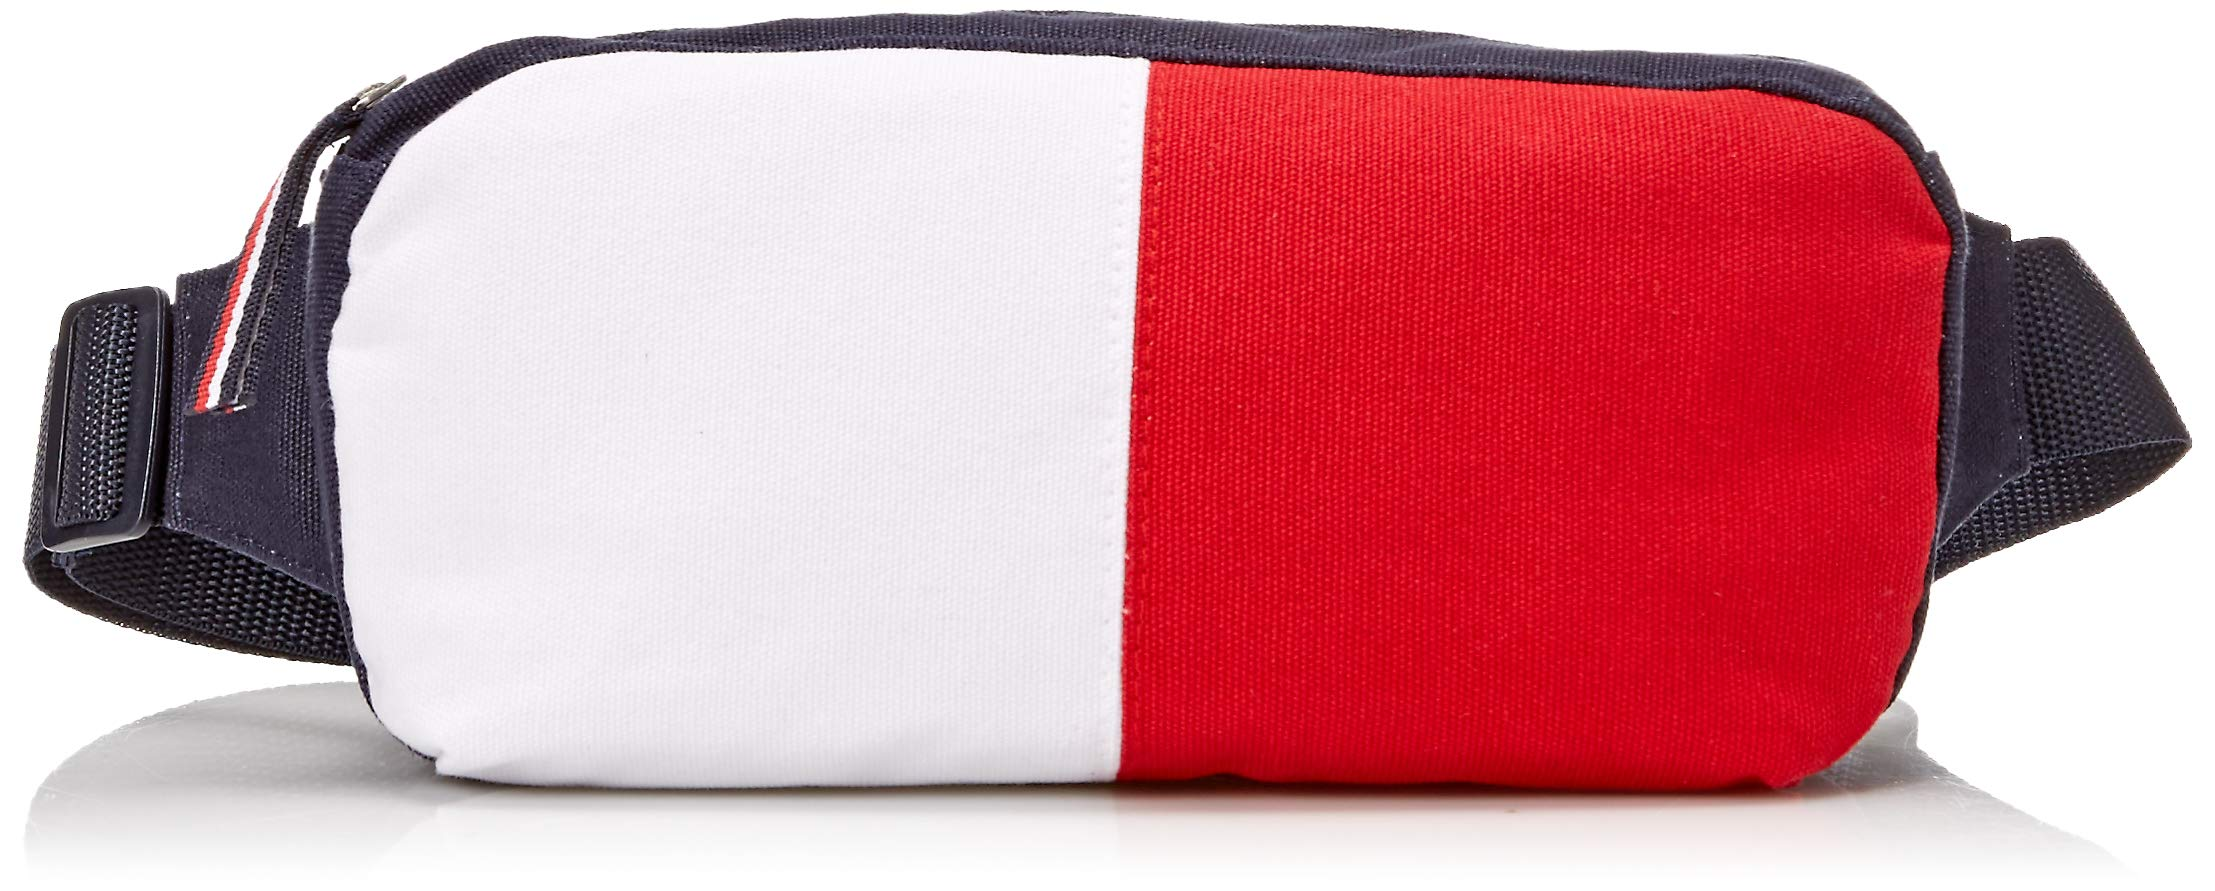 Tommy Hilfiger Luke Fanny Pack, Racing Red- Patent